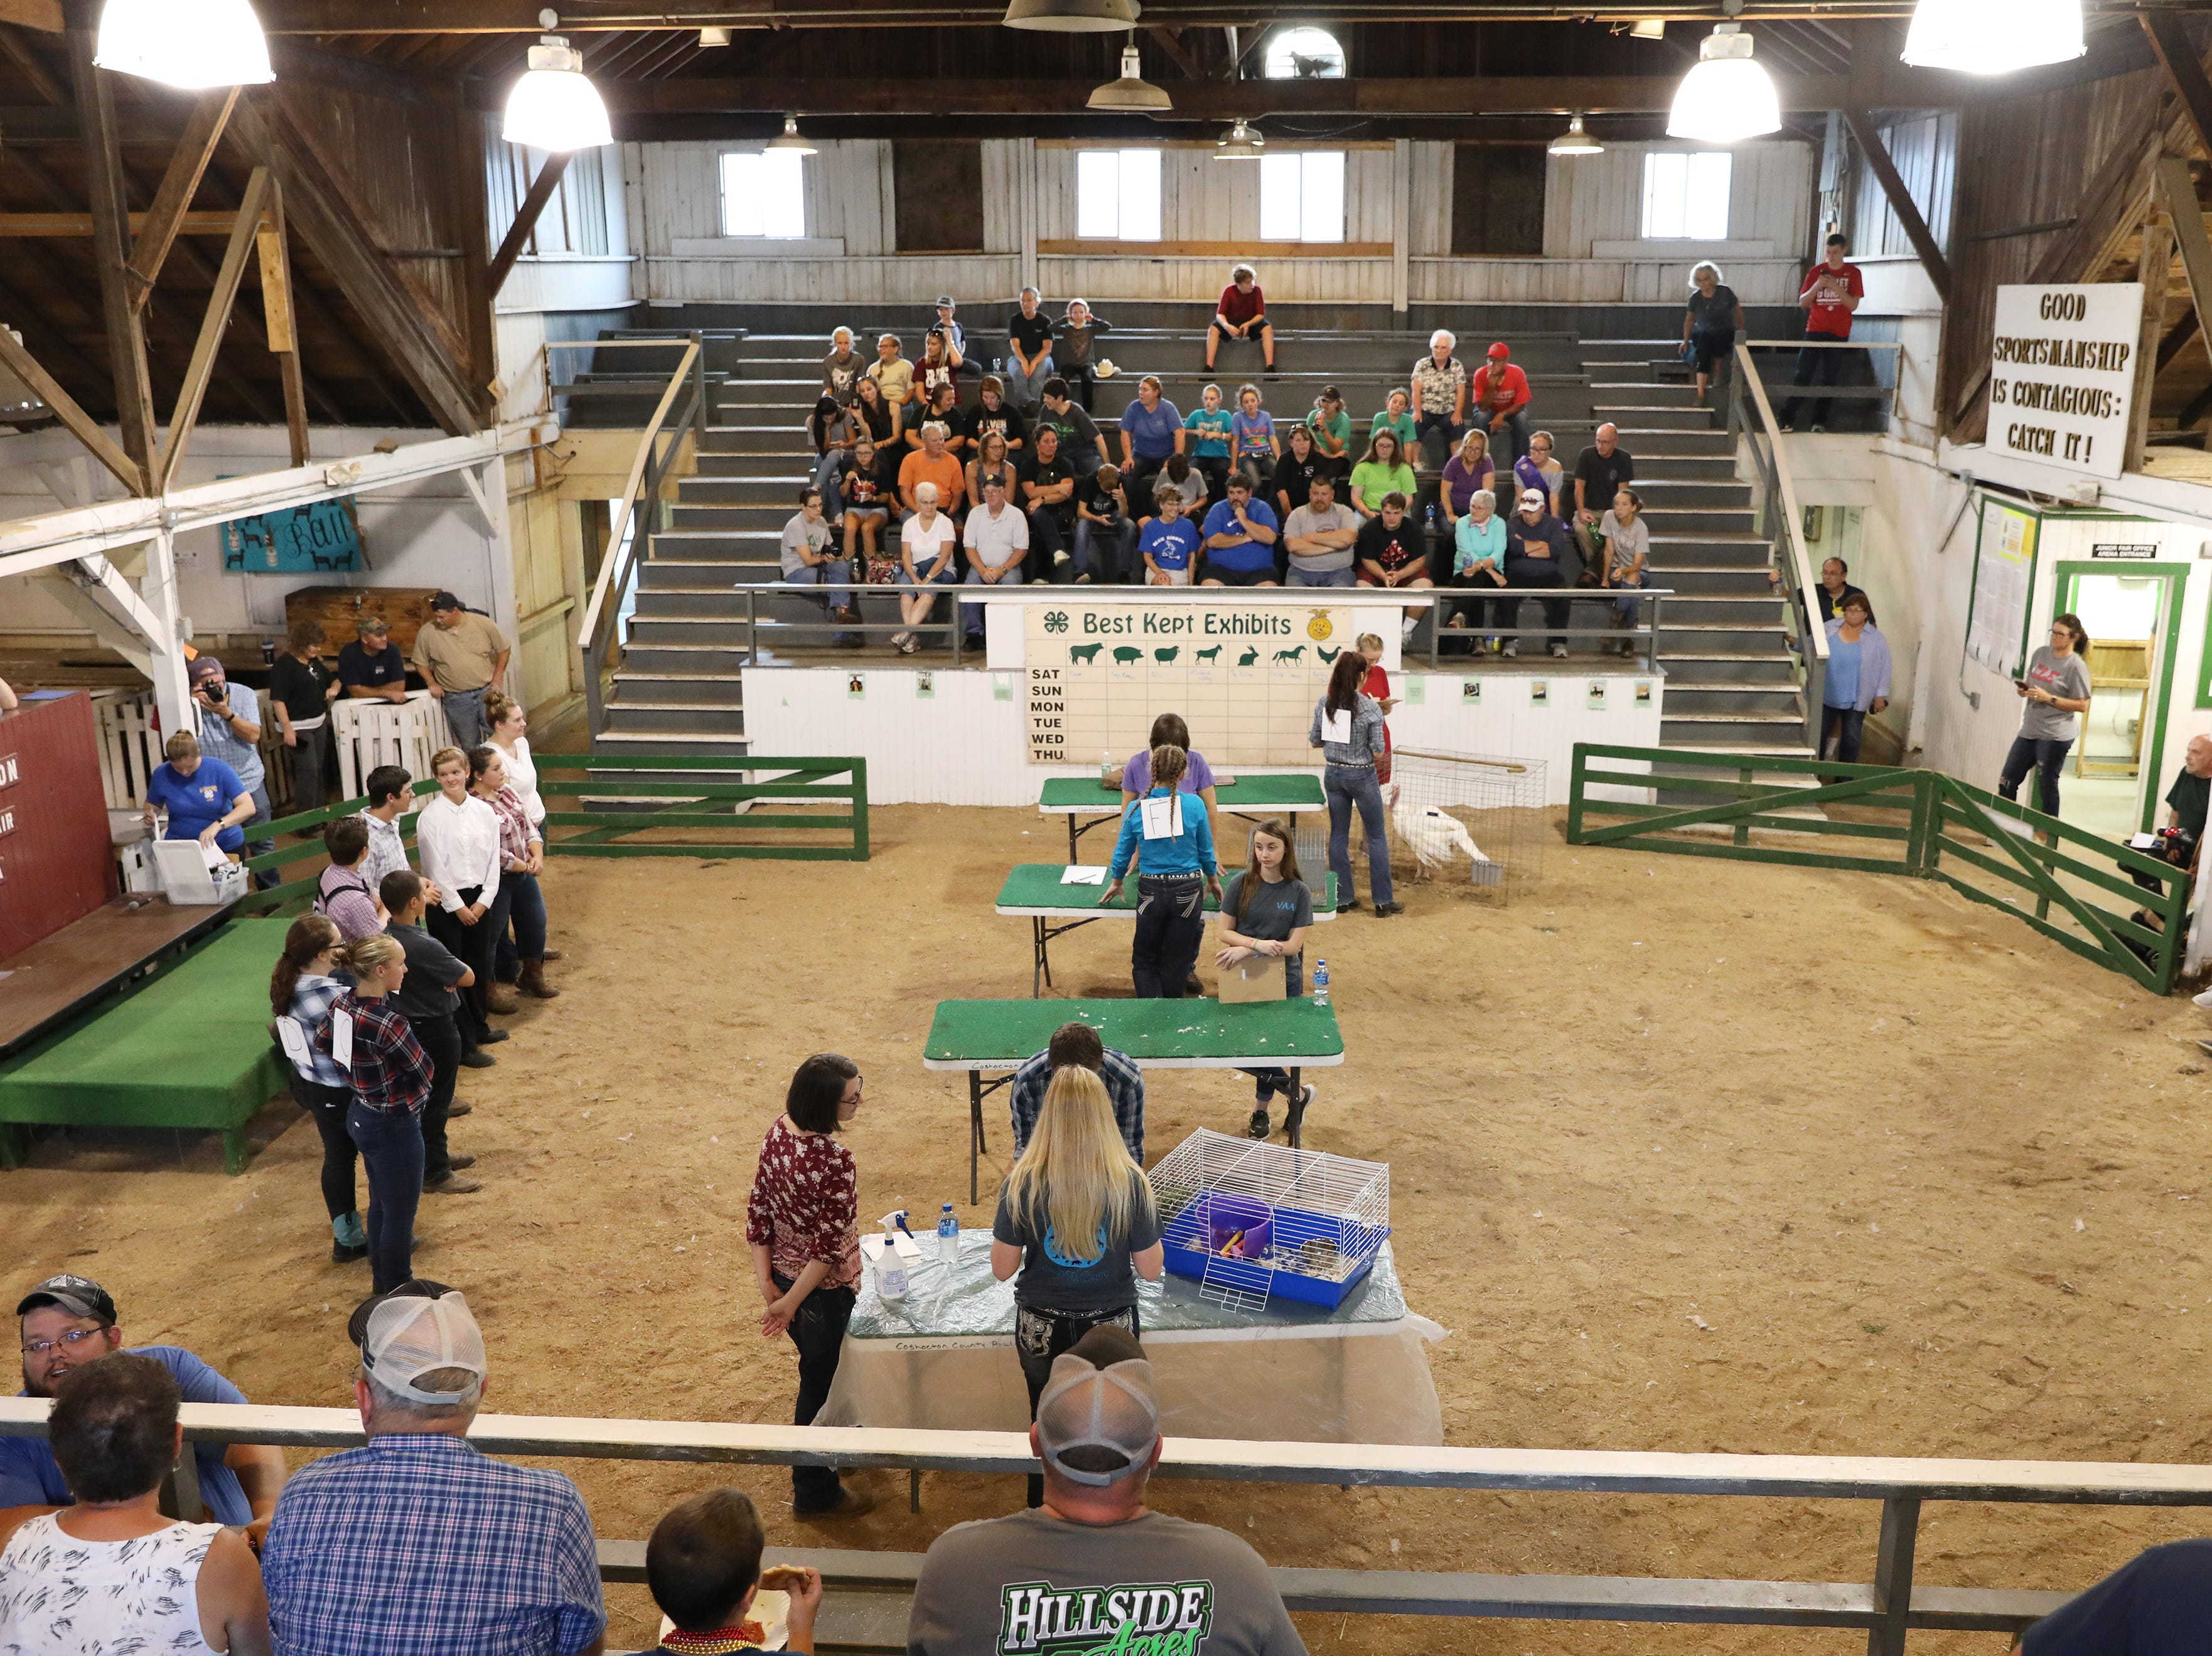 Contestants show small animals in the Junior Fair arena during the Showman of Showmen at the Coshocton County Fair on Wednesday.